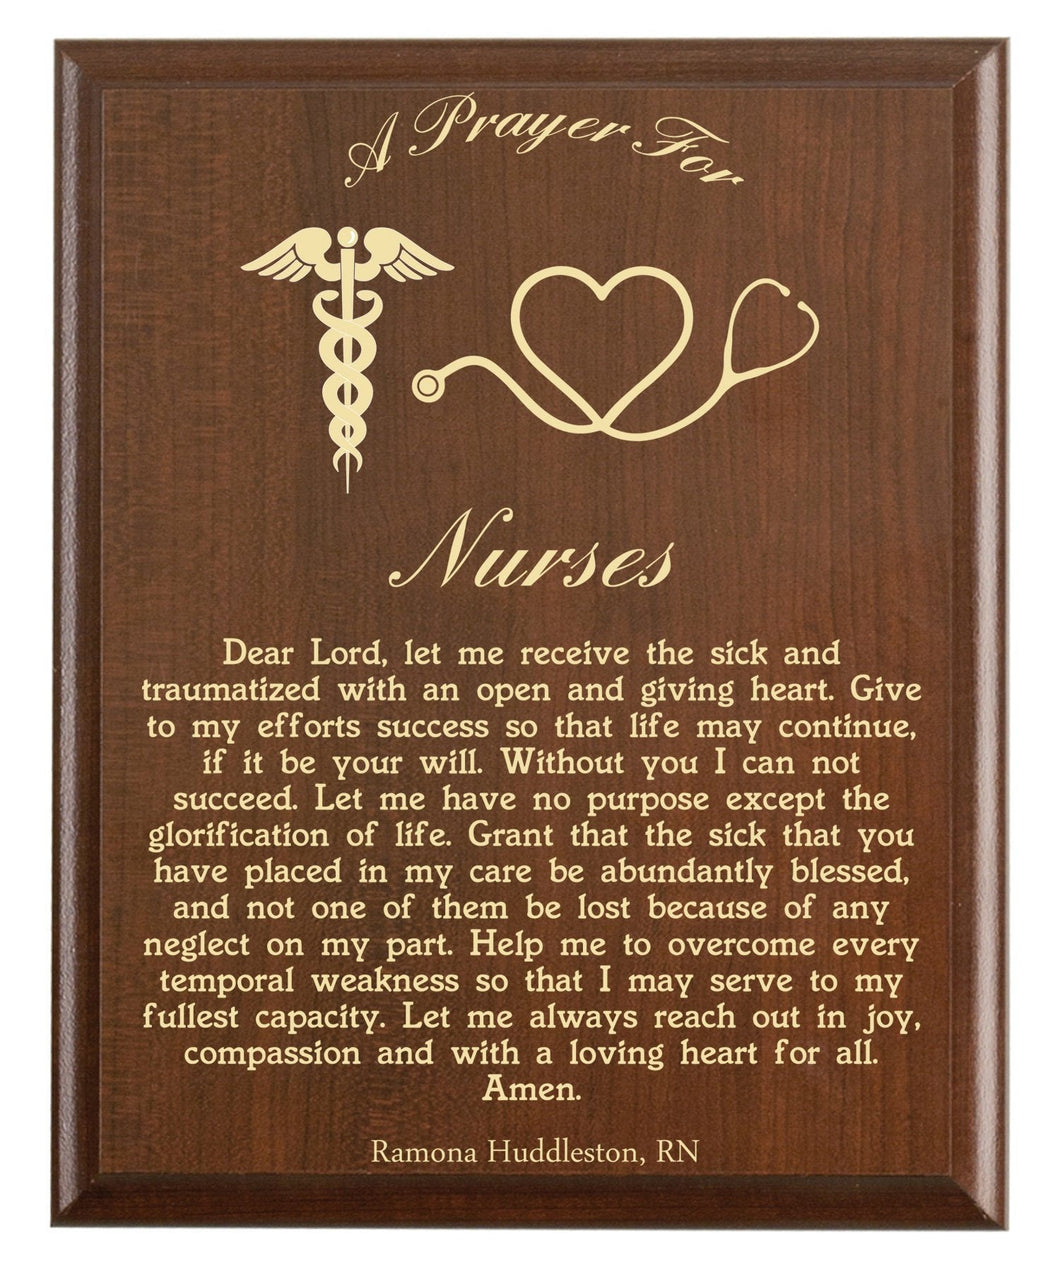 Christian prayer for a nurse with industry logo and free personalization. Cherry finish with laser engraved text.